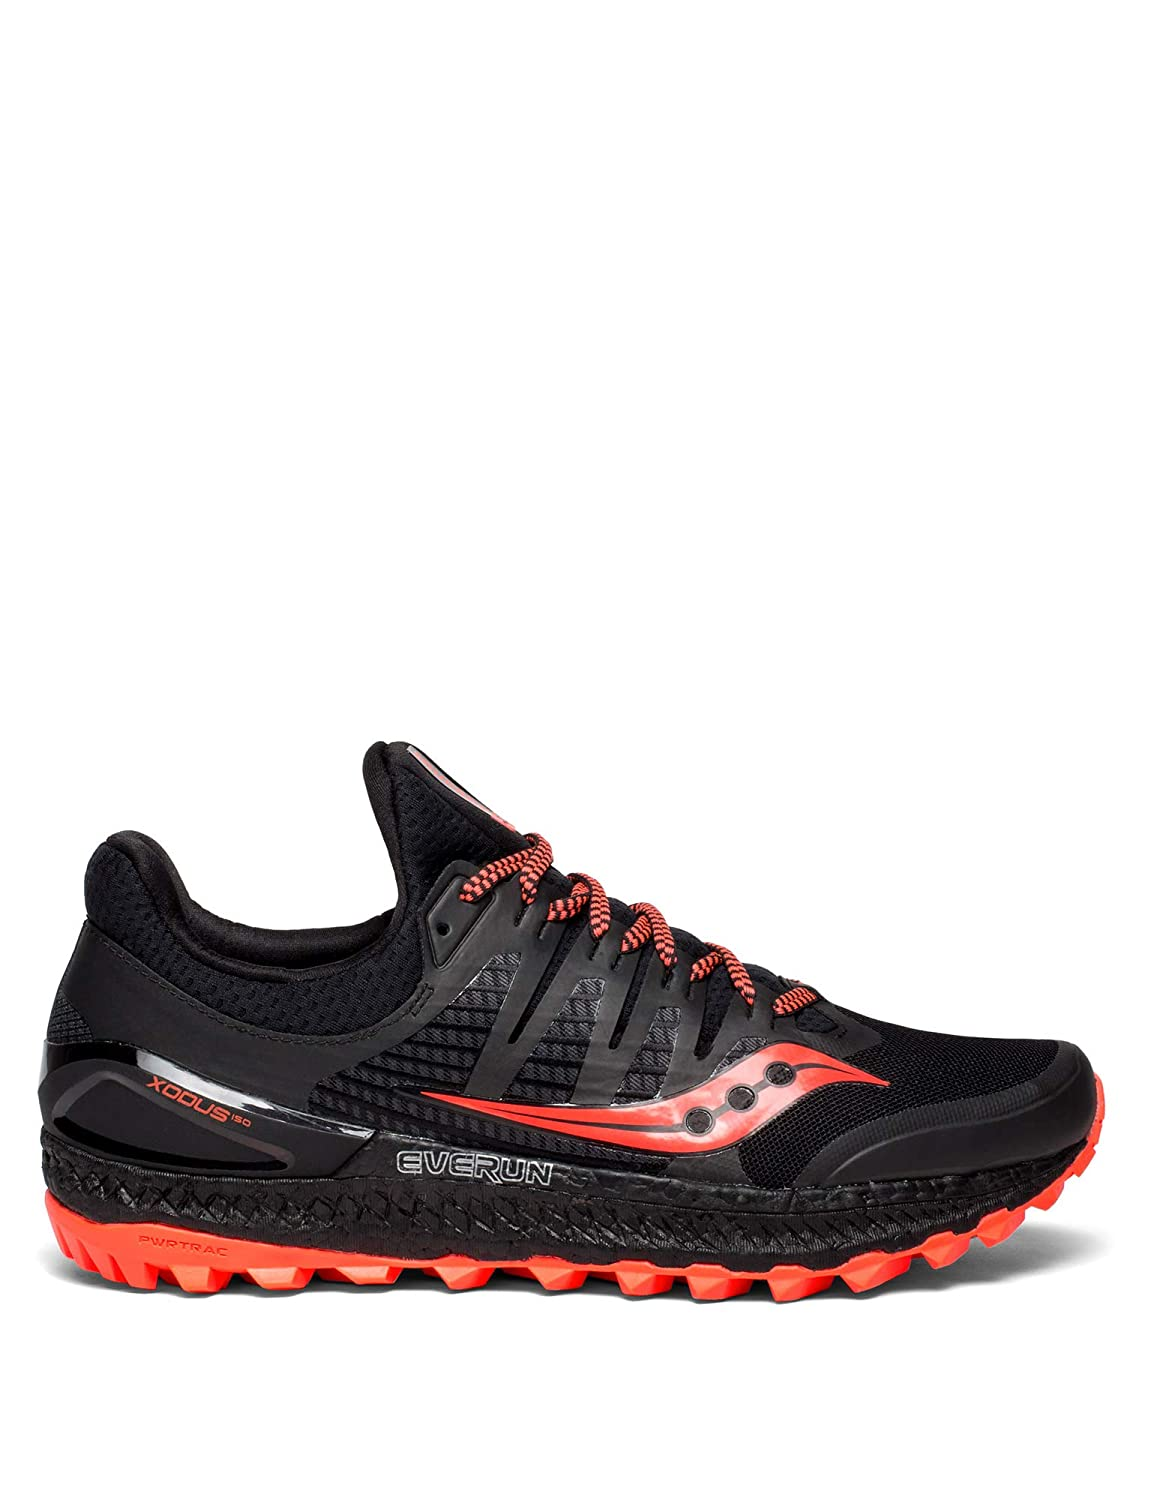 Saucony Men's Xodus Iso 3 Training Shoes: Amazon.co.uk